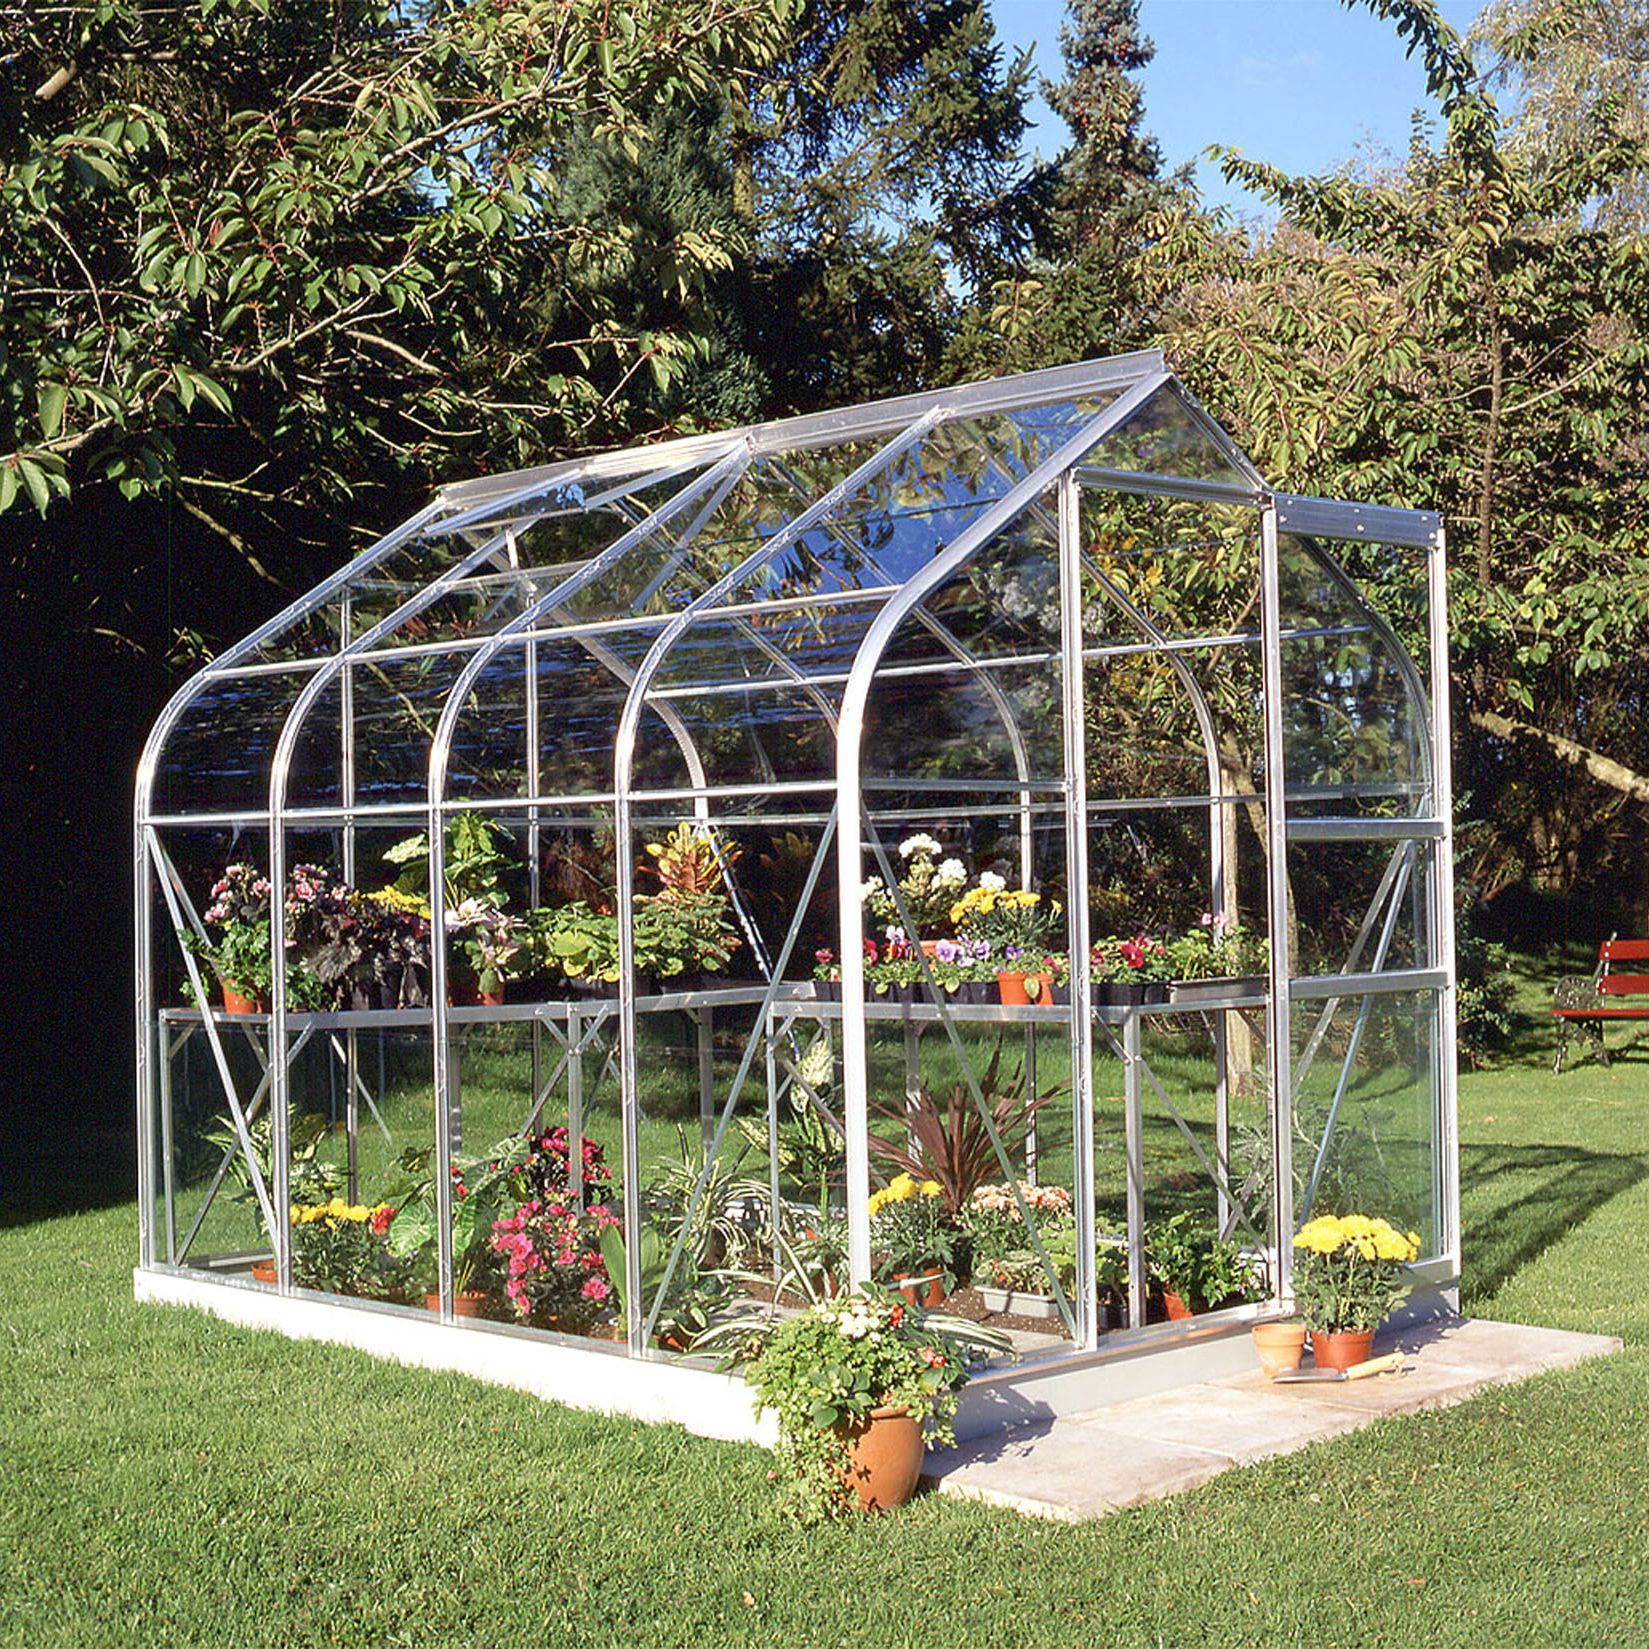 B&Q Metal 6x8 Toughened safety glass greenhouse